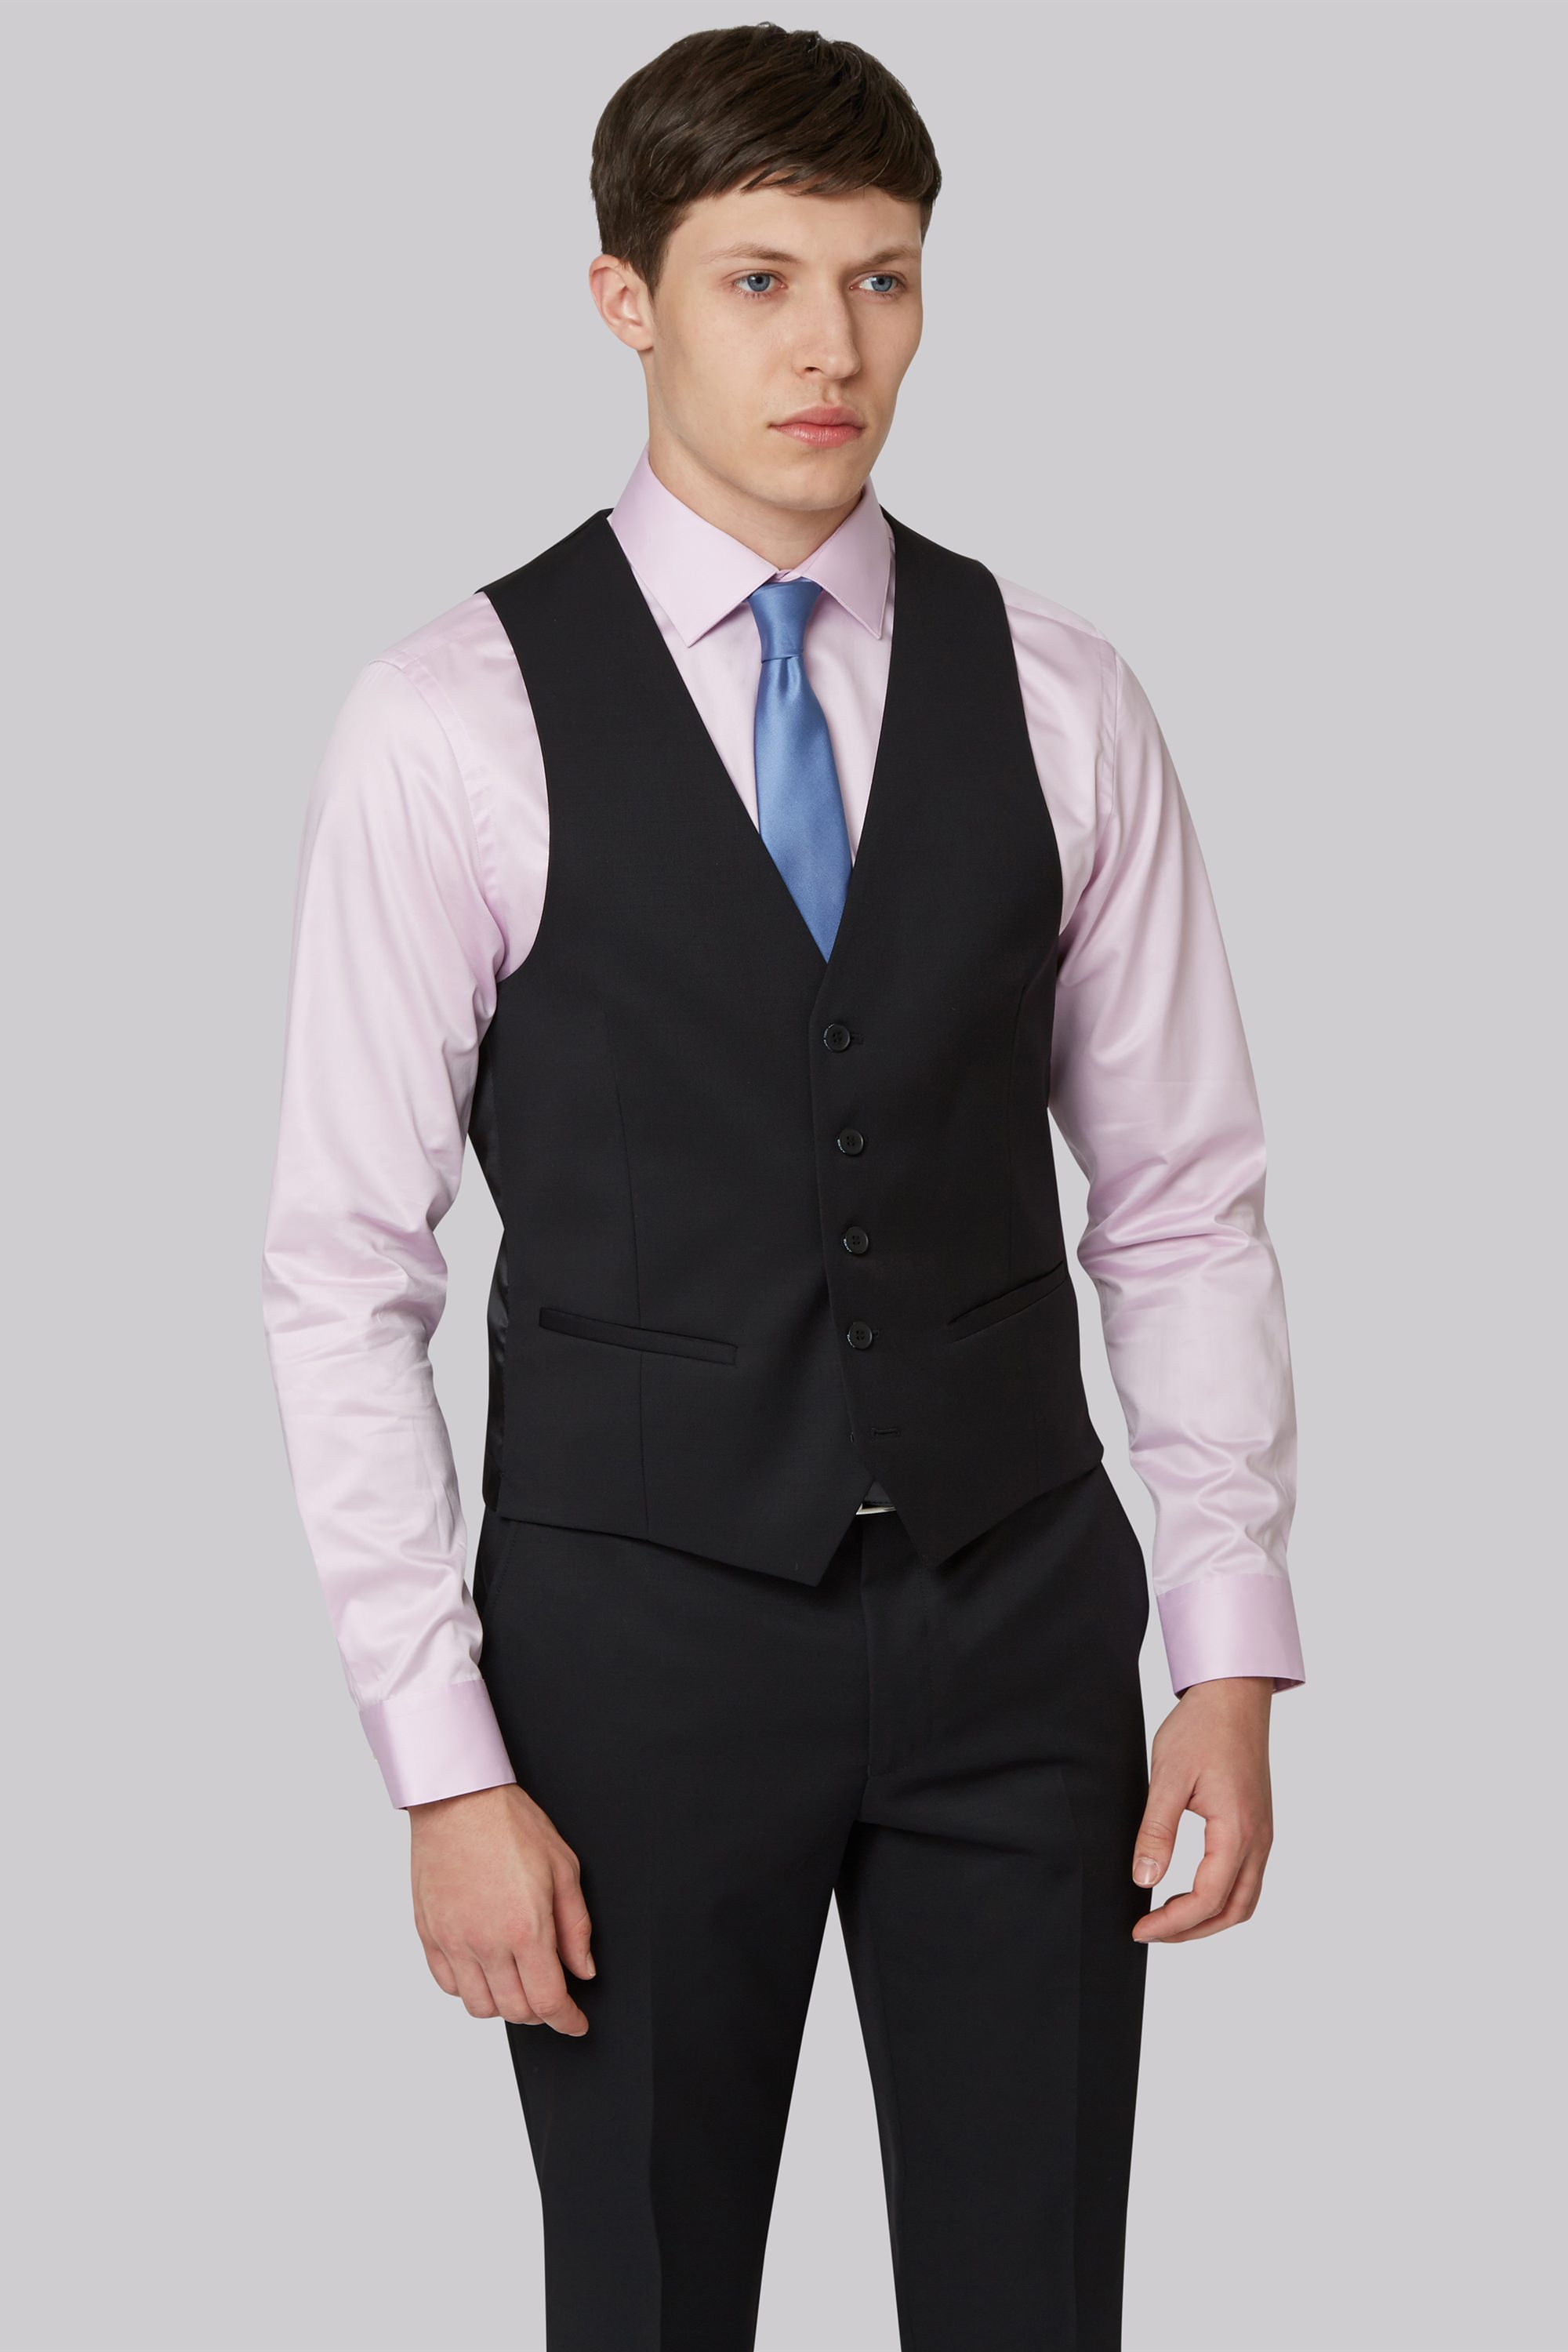 Your Guide to Wearing a Waistcoat Most guys keep their waistcoat tucked away in the back of the wardrobe, only to be worn to weddings and black tie events. Our guide will give you all you need to know about how you can make men's waistcoats a wardrobe staple for every occasion.